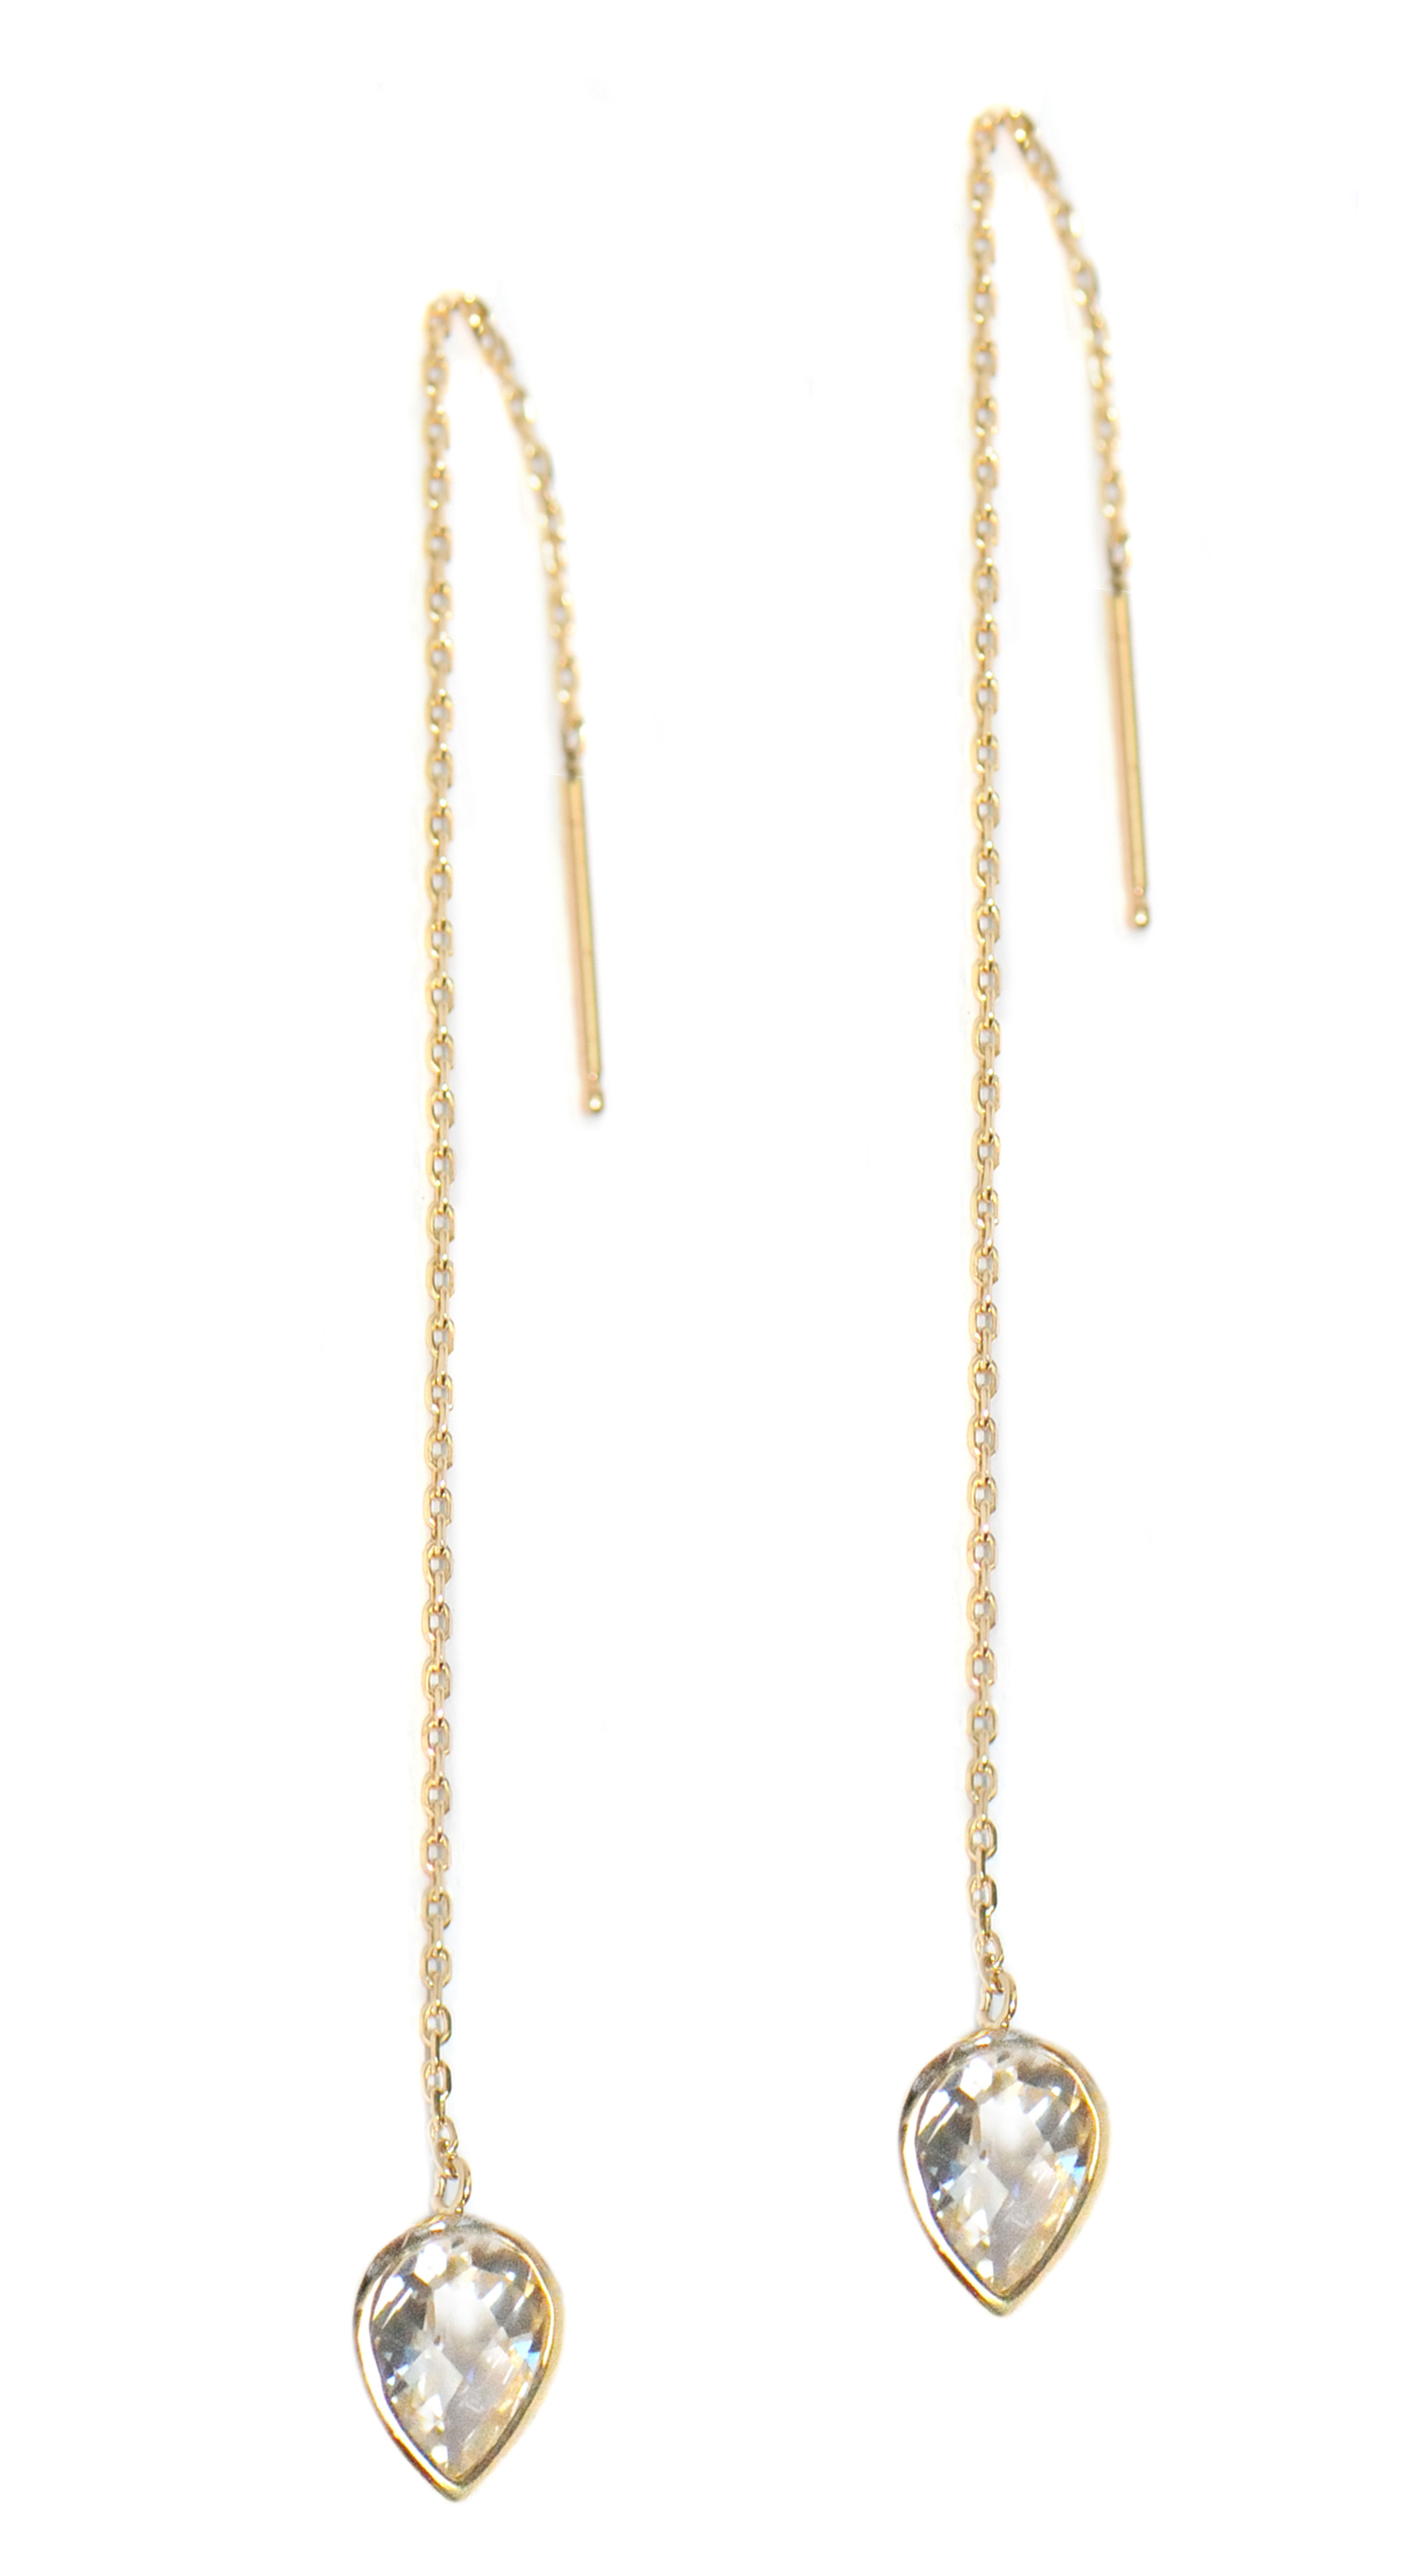 Anzie Classique Pear Chain Earrings Gold